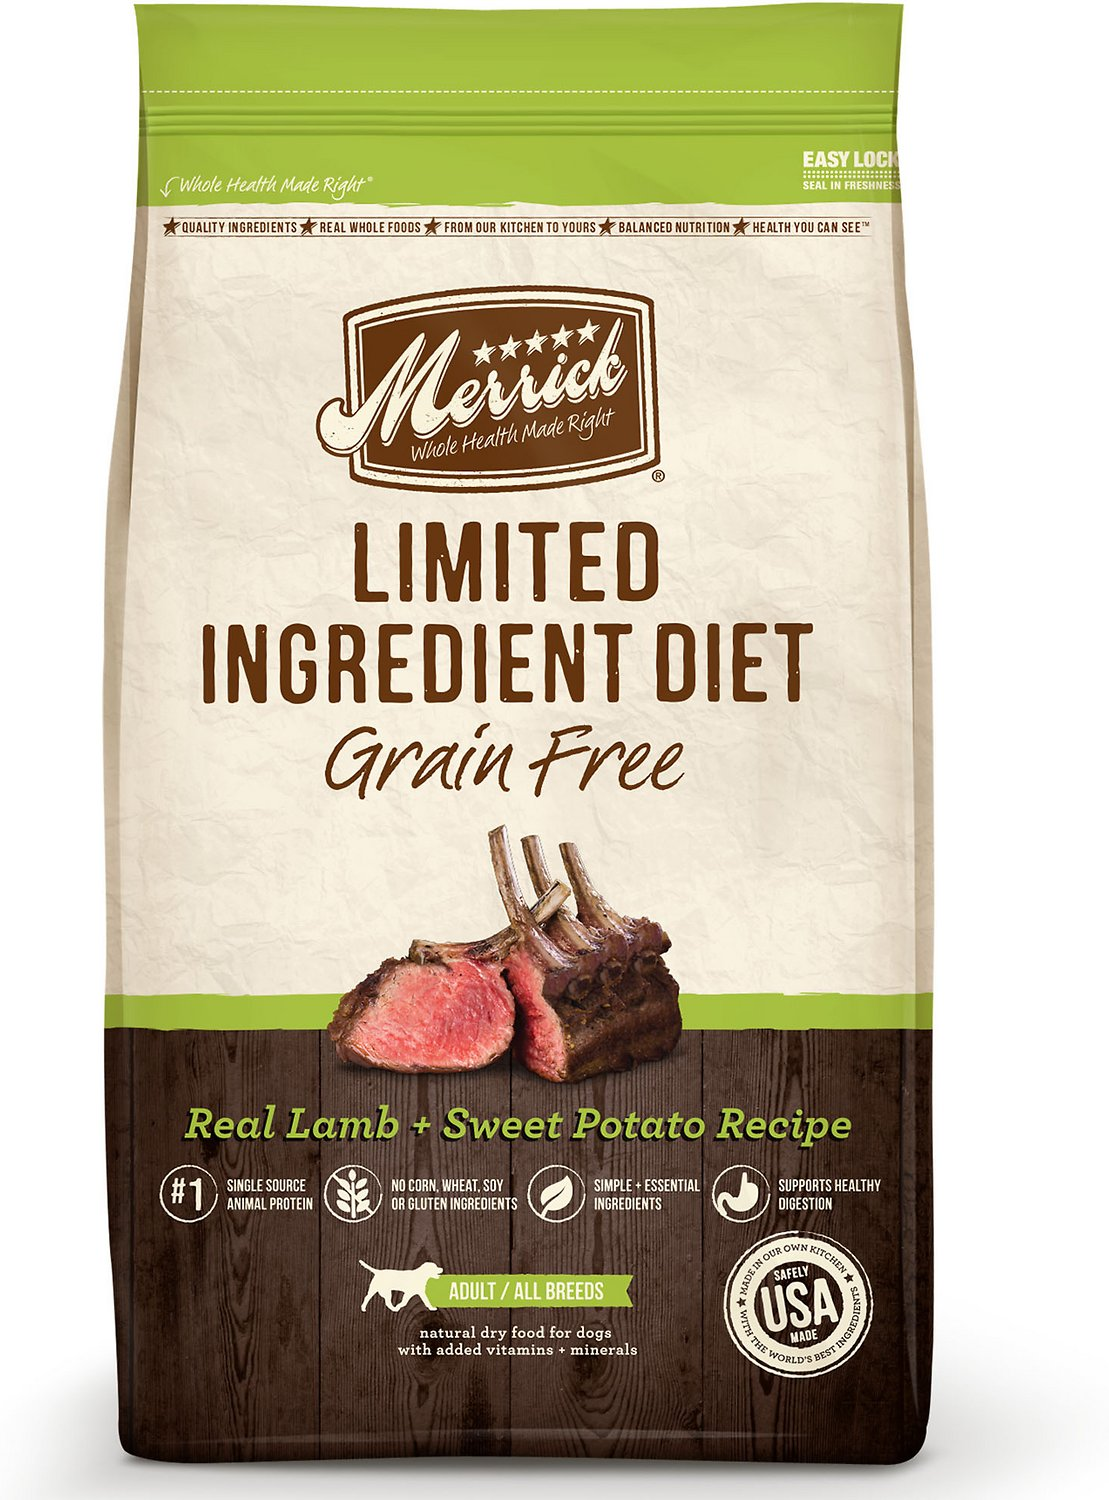 Merrick Limited Ingredient Diet Grain-Free Real Lamb + Sweet Potato Recipe Dry Dog Food Image